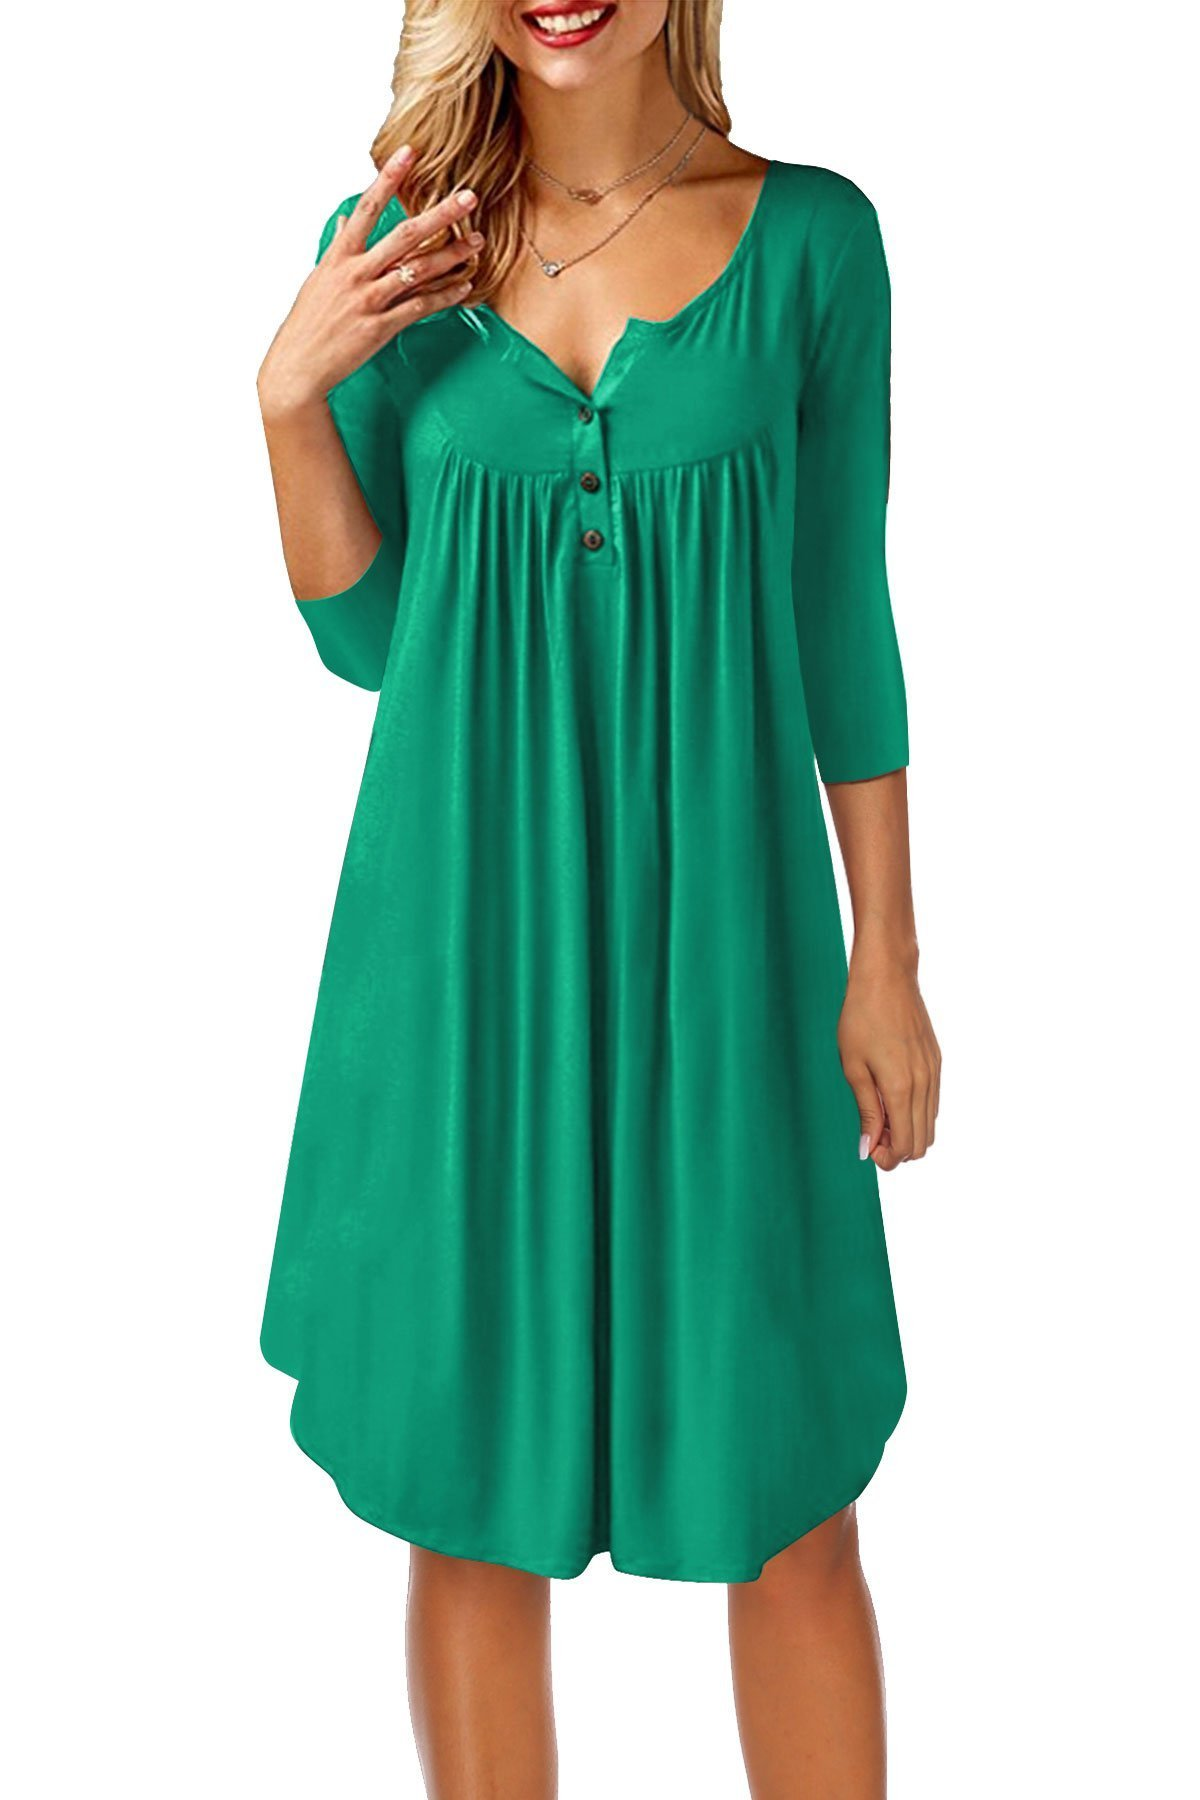 Women's Long Sleeves A-Line Dress Swing Shirts Blouse with Button Green Small